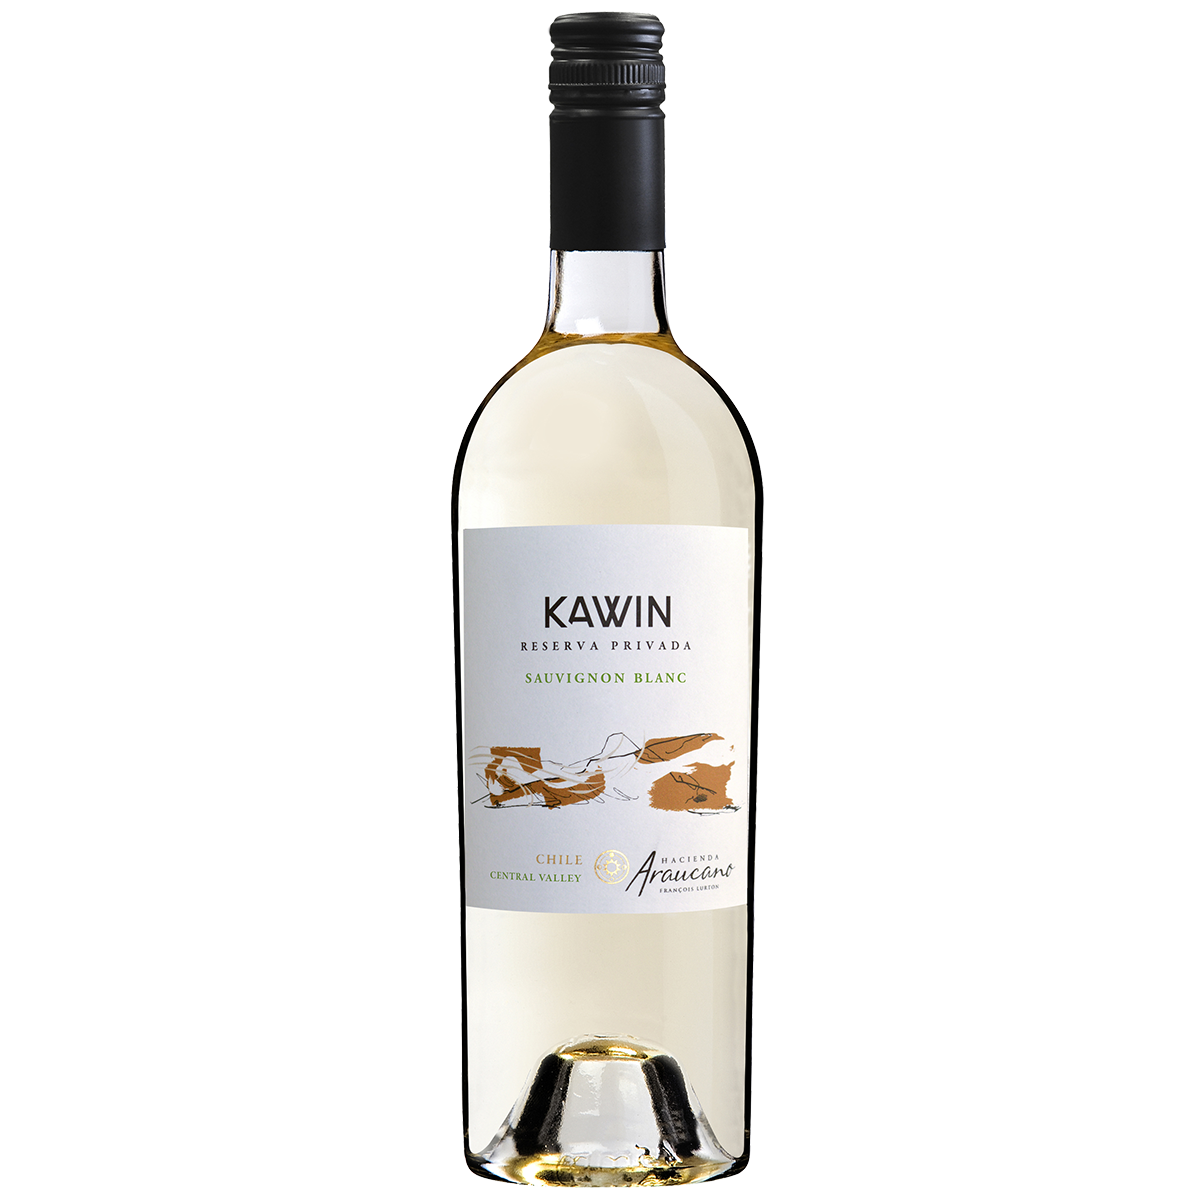 CHL2101 智利魯頓谷人莊園凱因白蘇維濃陳年珍釀白葡萄酒 Hacienda Araucano Kawin Reserva Privada Sauvignon Blanc, Central Valley (750ML)